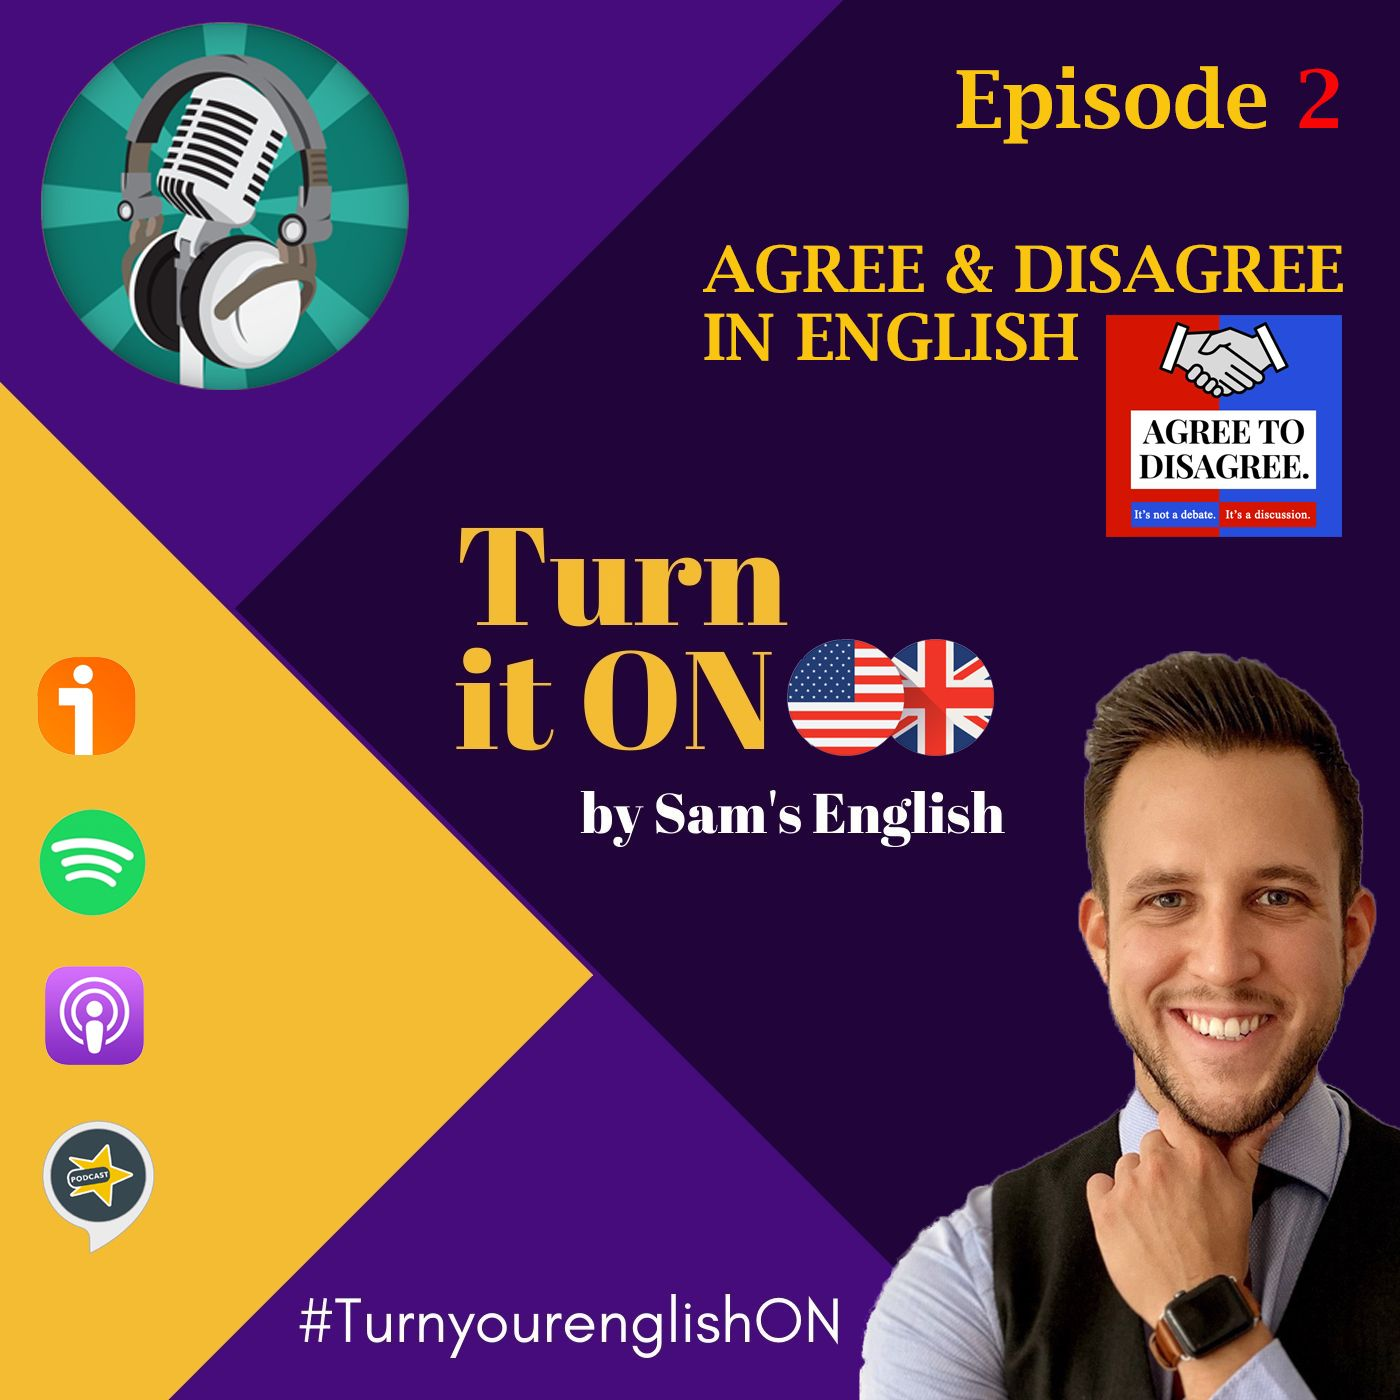 Episode # 2 Agree to disagree / How to agree and disagree in english